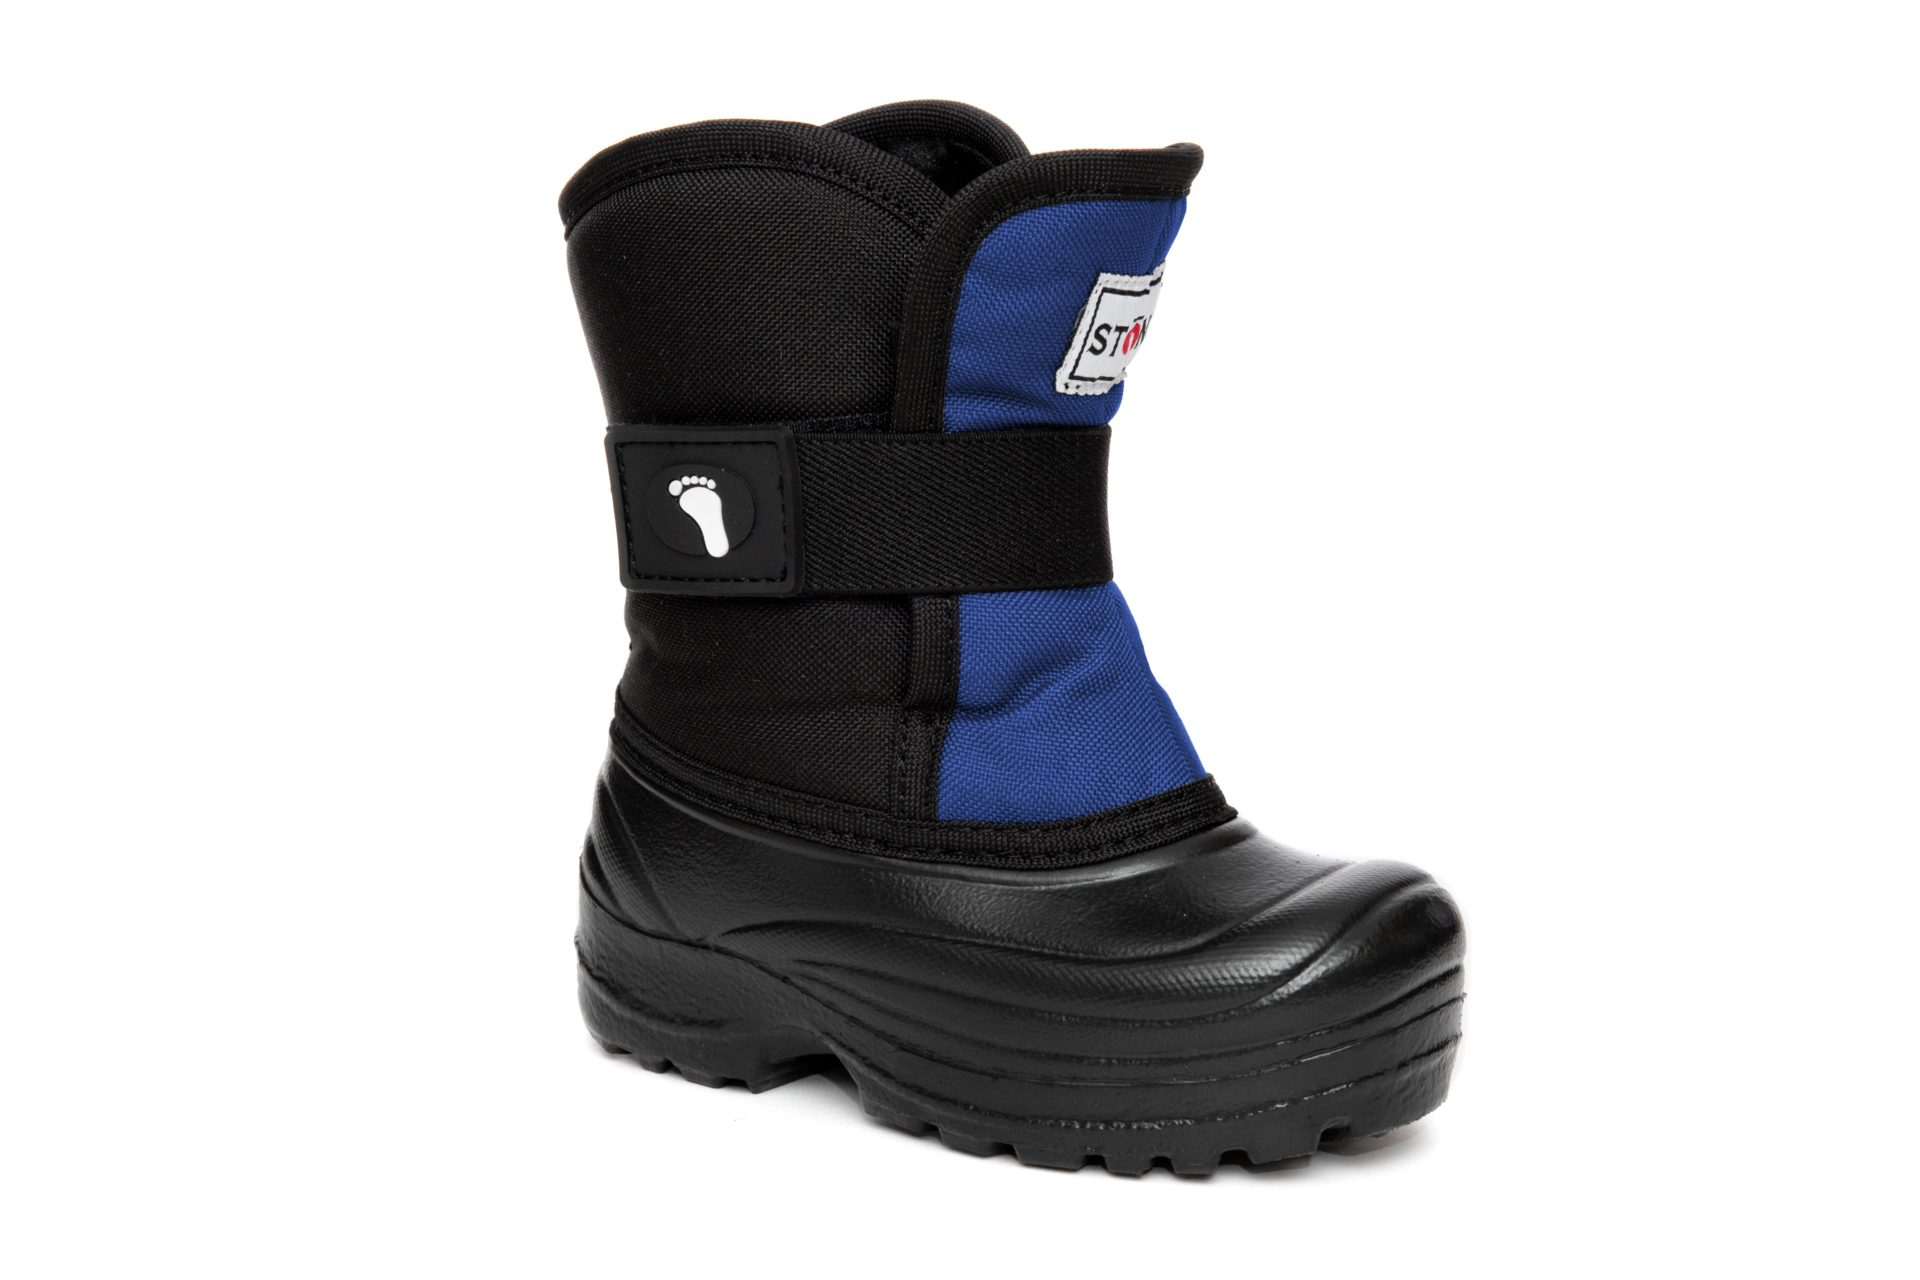 product shot of kids winter boot